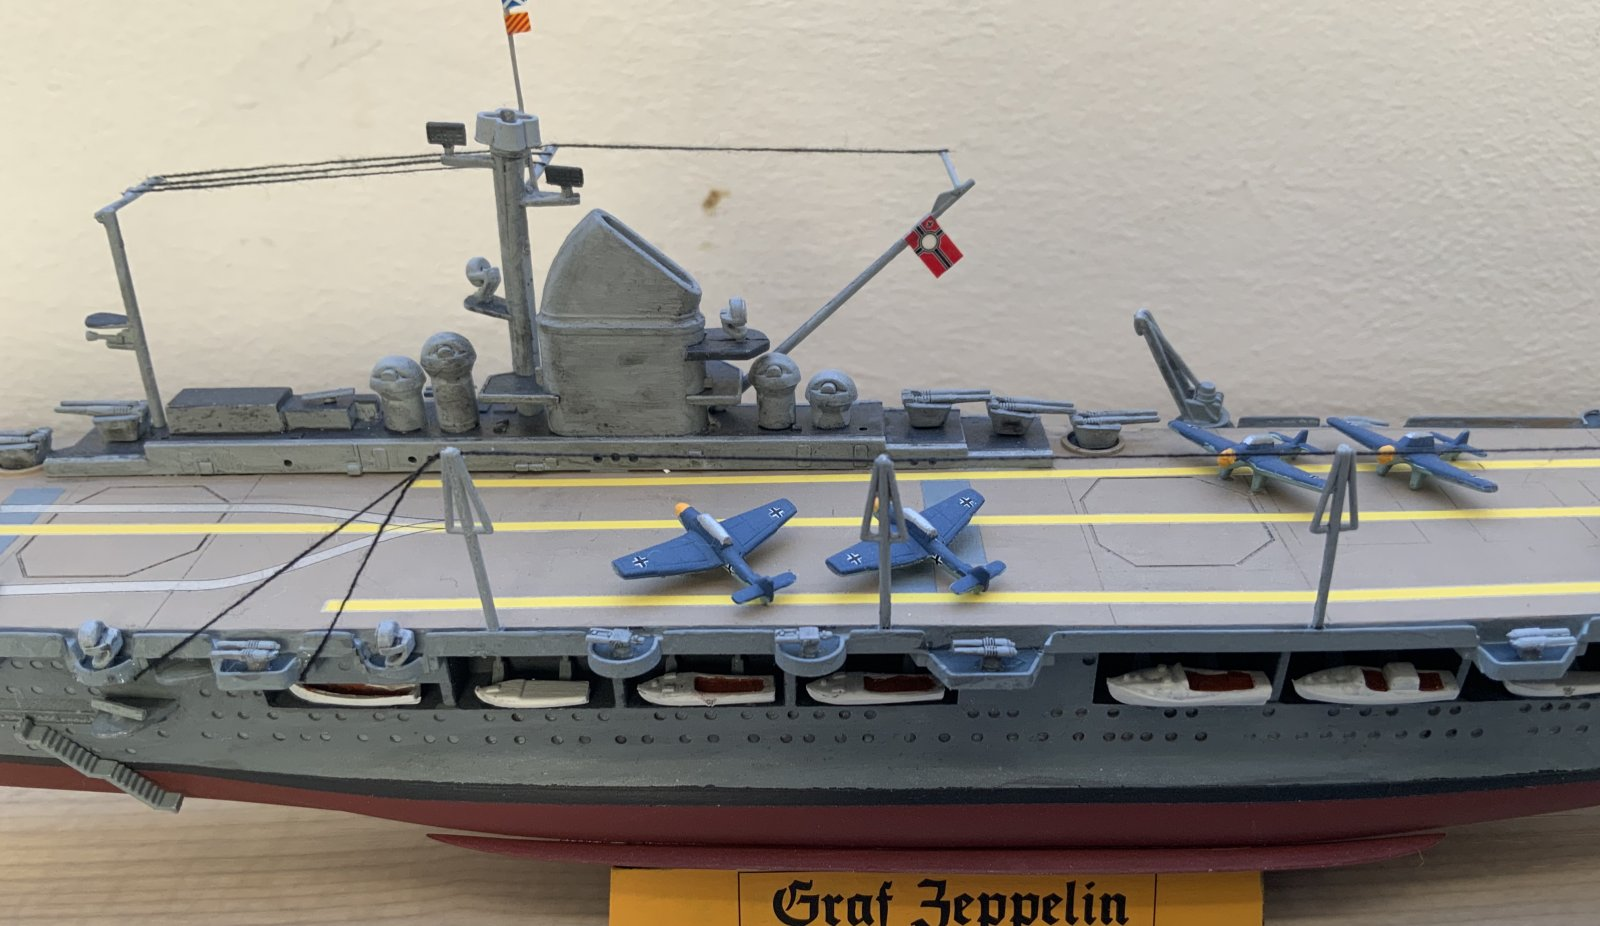 Graf Zeppelin full view (middle)